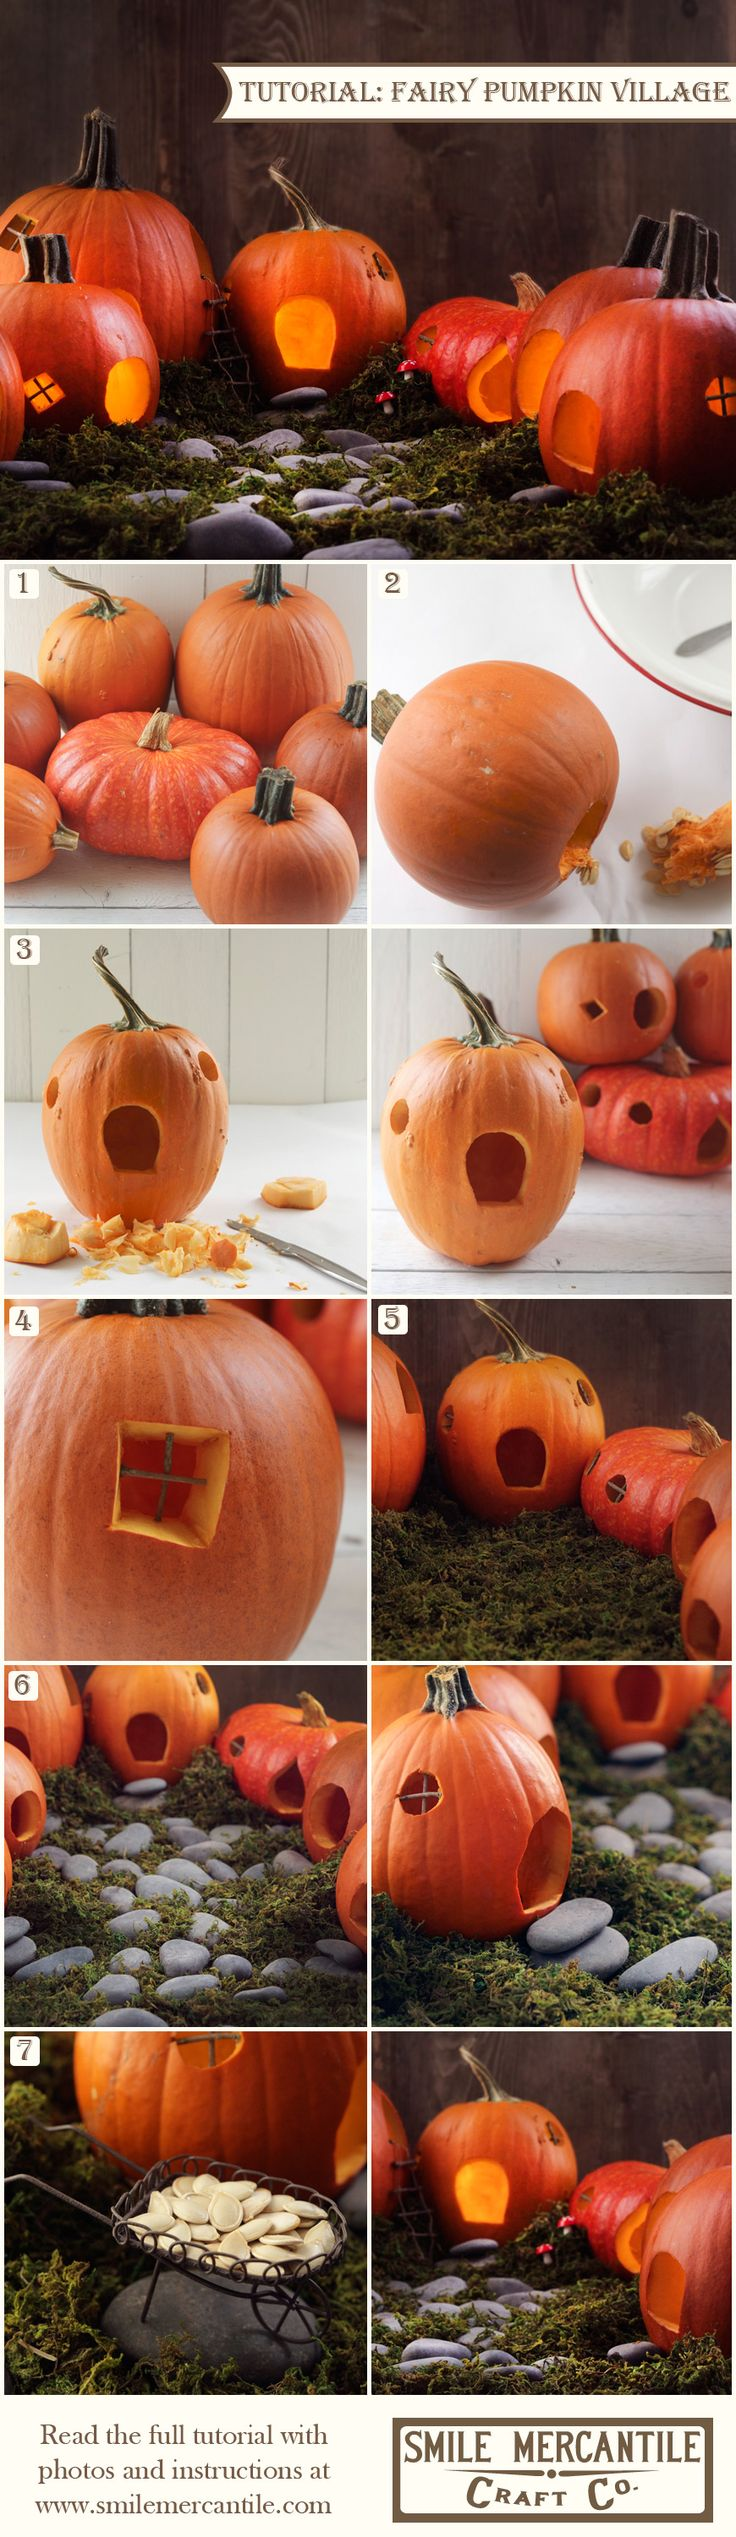 41 best images about smile mercantile craft tutorials on for Fairytale pumpkin carving ideas